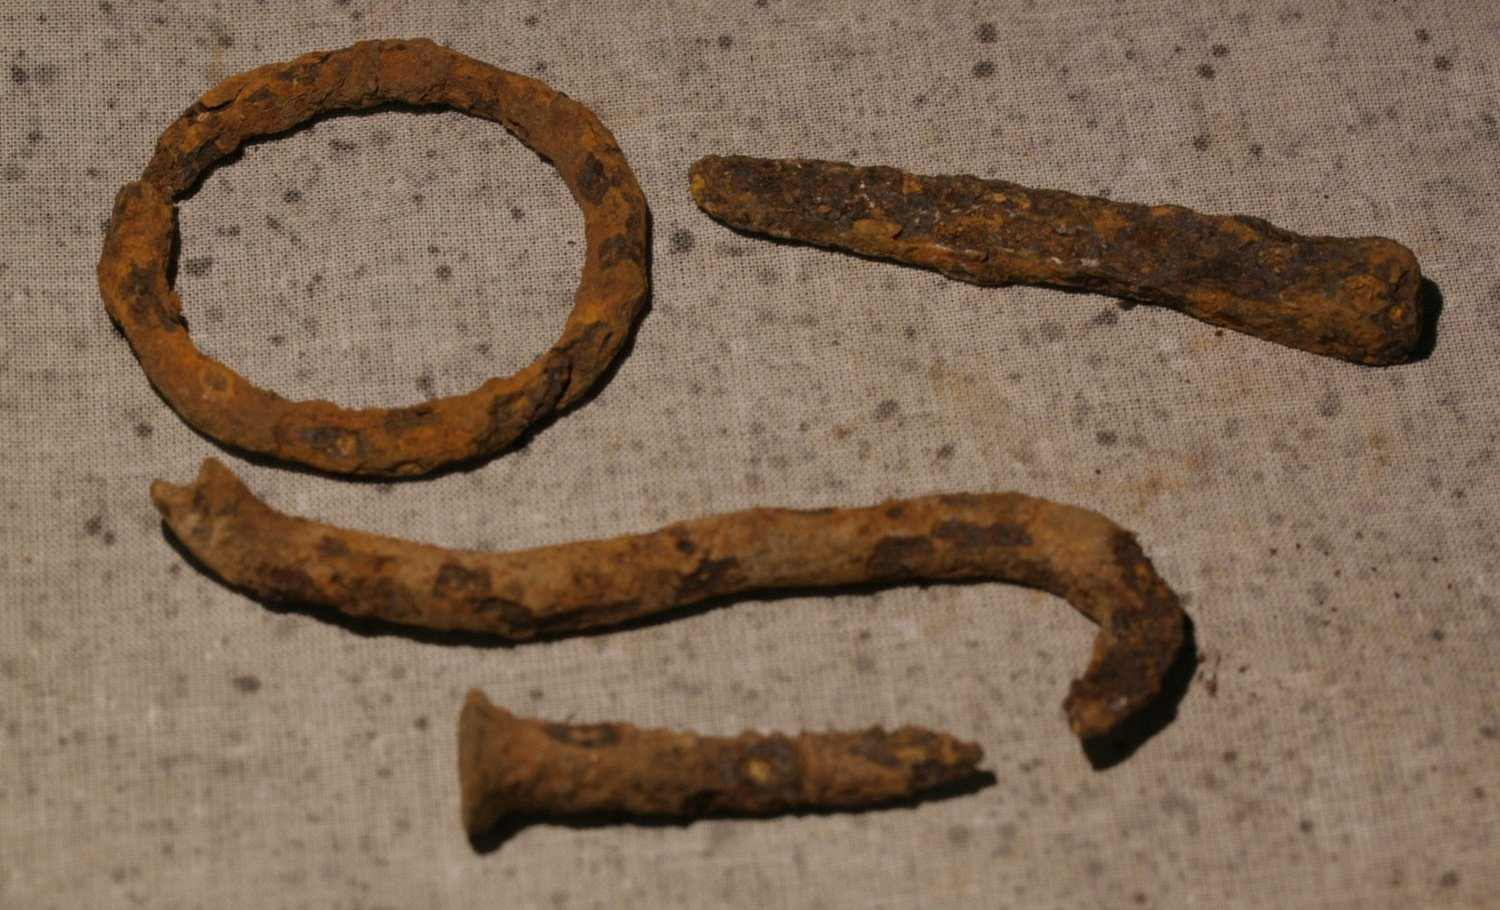 JUST ADDED ON 4/18 - CULPEPER, VIRGINIA - Four Iron Relics